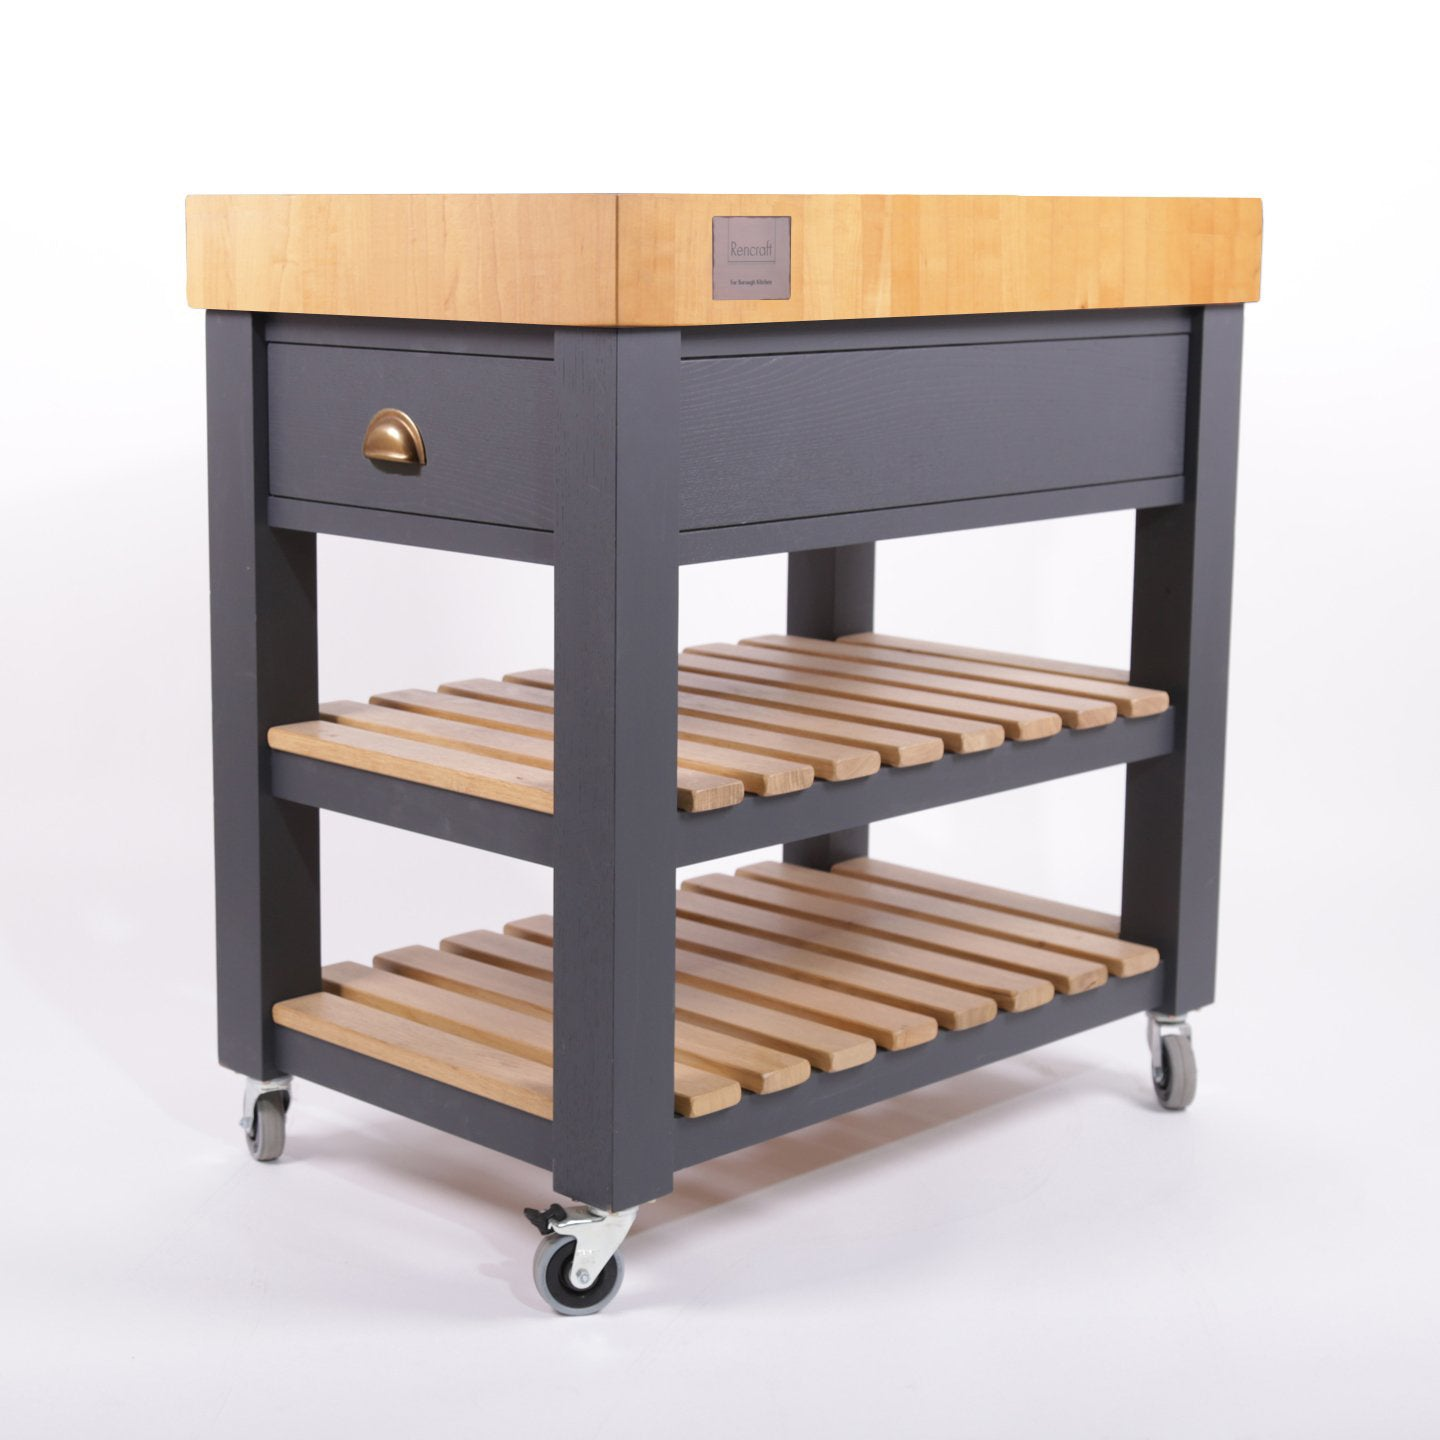 Rencraft Butchers Block / Maple / Dark Grey